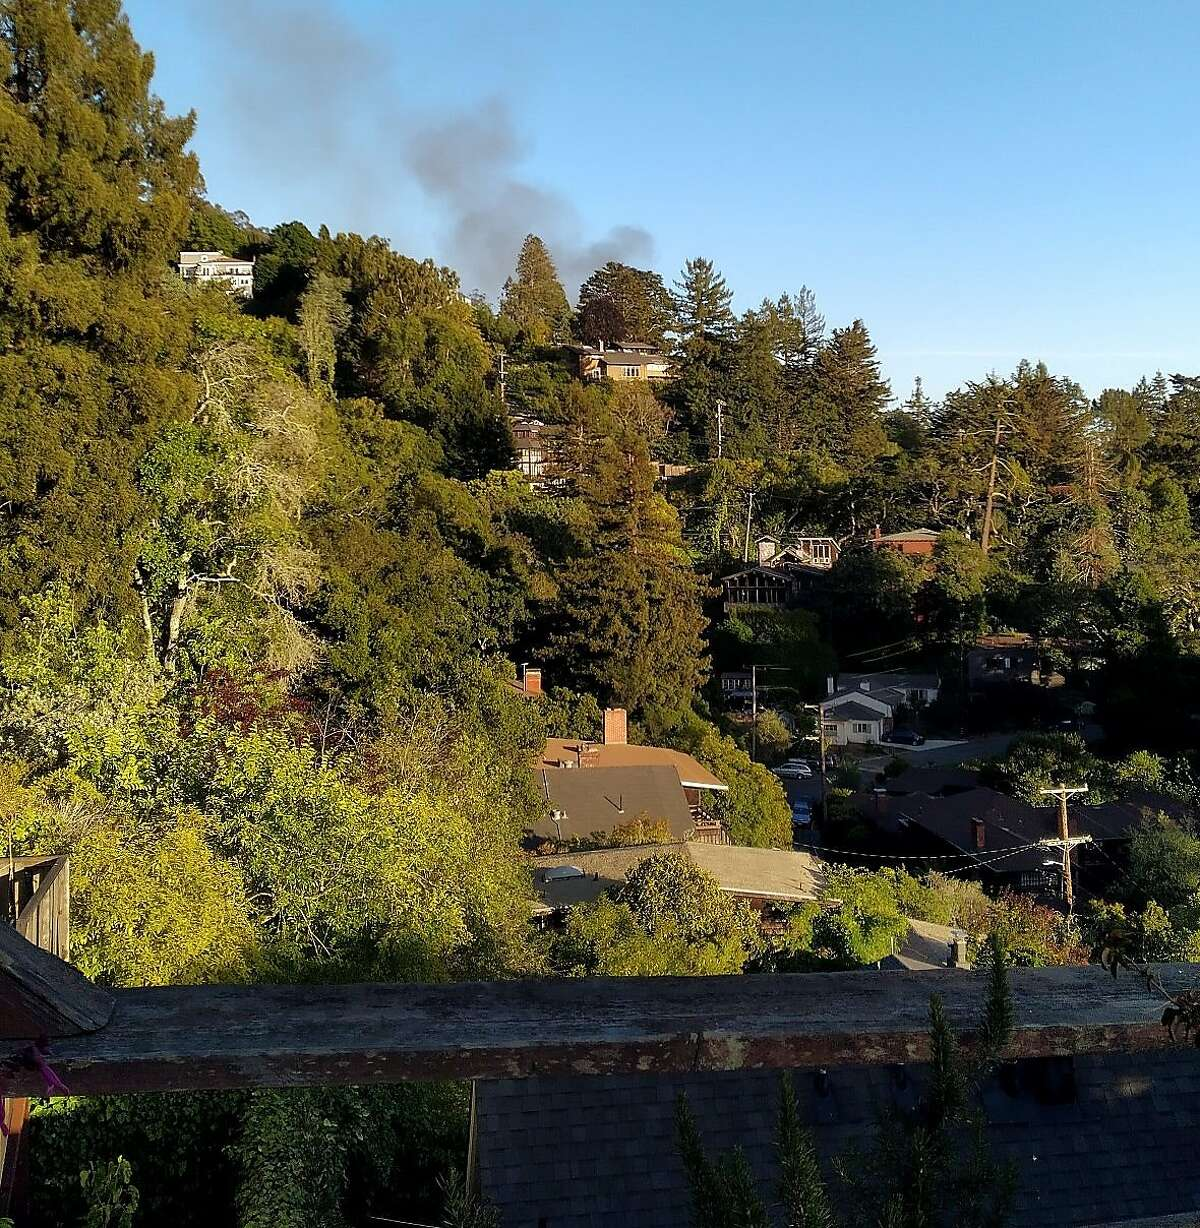 Smoke rises from one of the fires in the residential hills north of the UC-Berkeley campus on June 11, 2021. A 12-year-old girl has been arrested for the apparent arson.